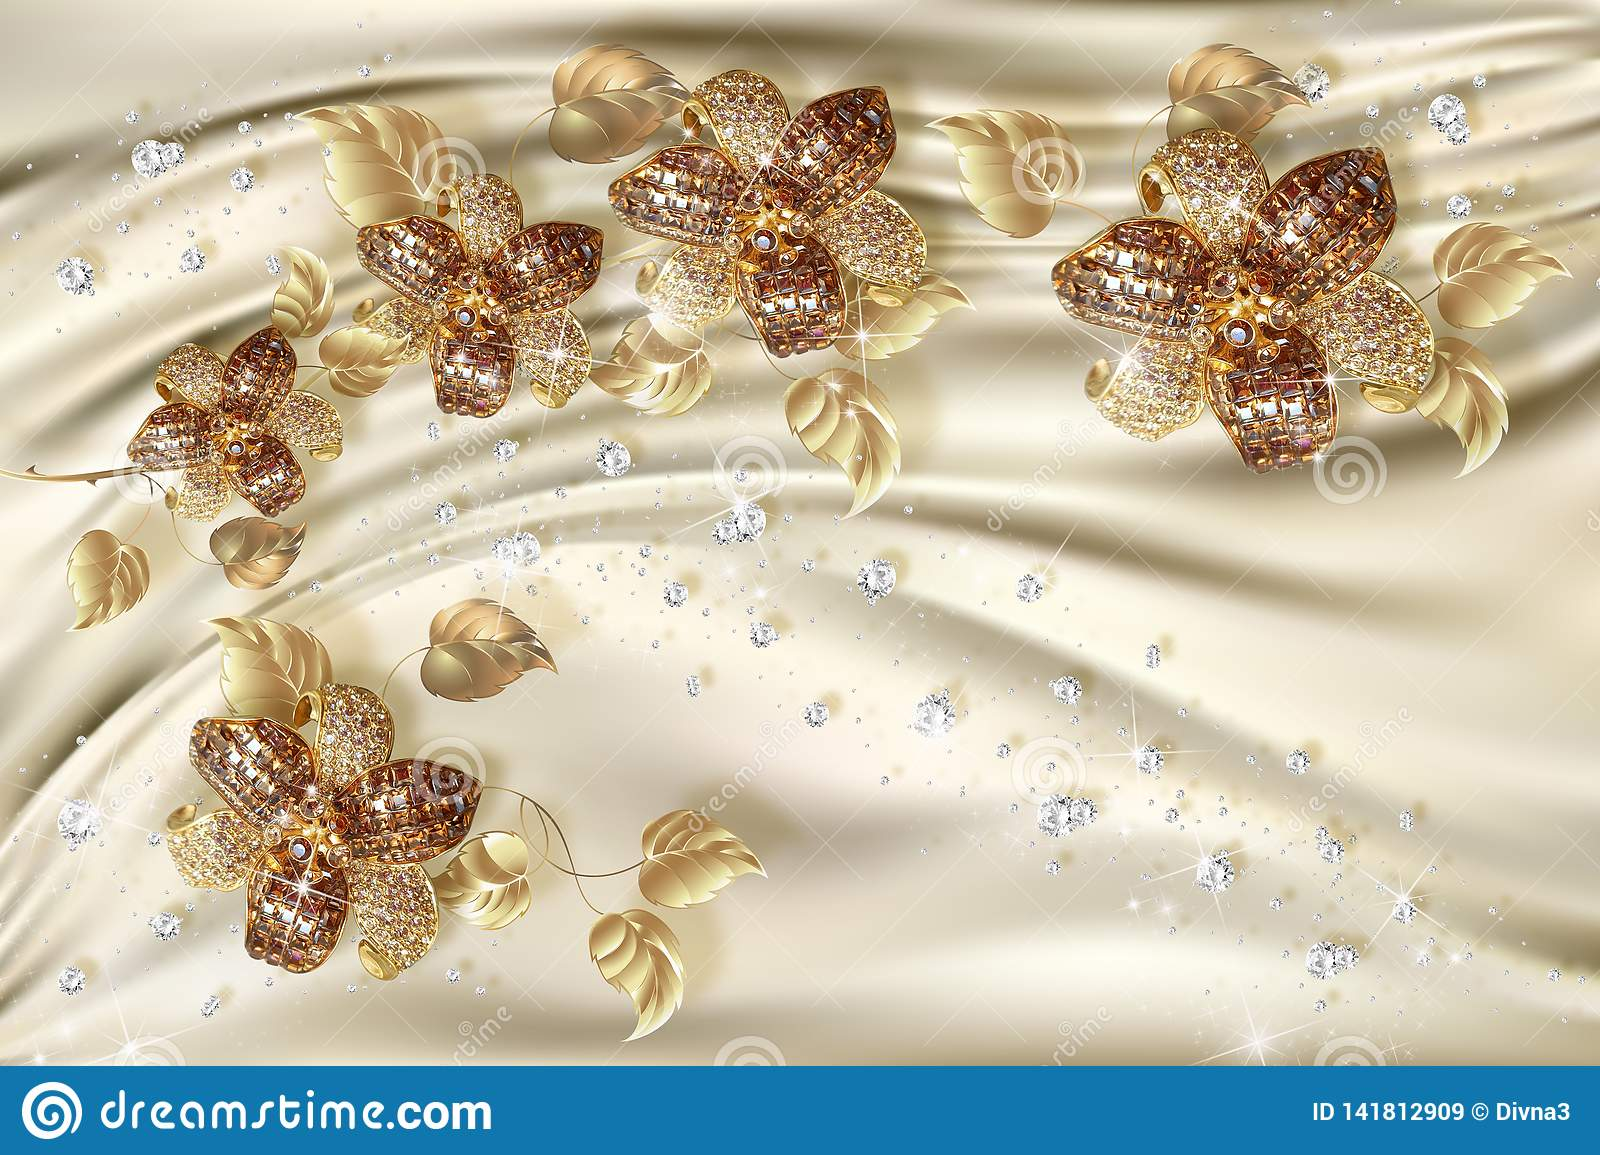 3d wallpaper gold jewelry flowers on